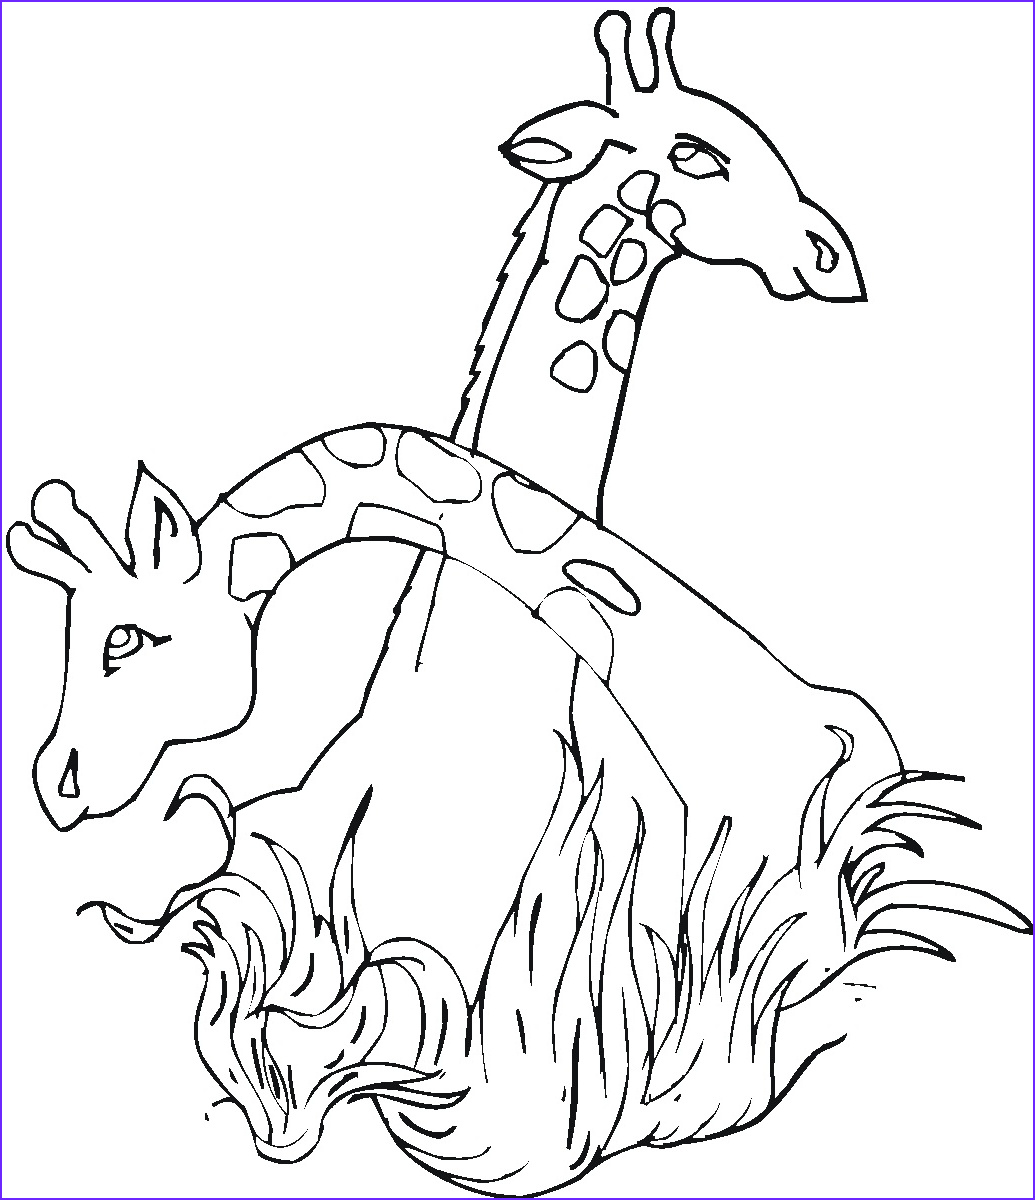 Giraffe Coloring Pictures Beautiful Photos Free Printable Giraffe Coloring Pages for Kids